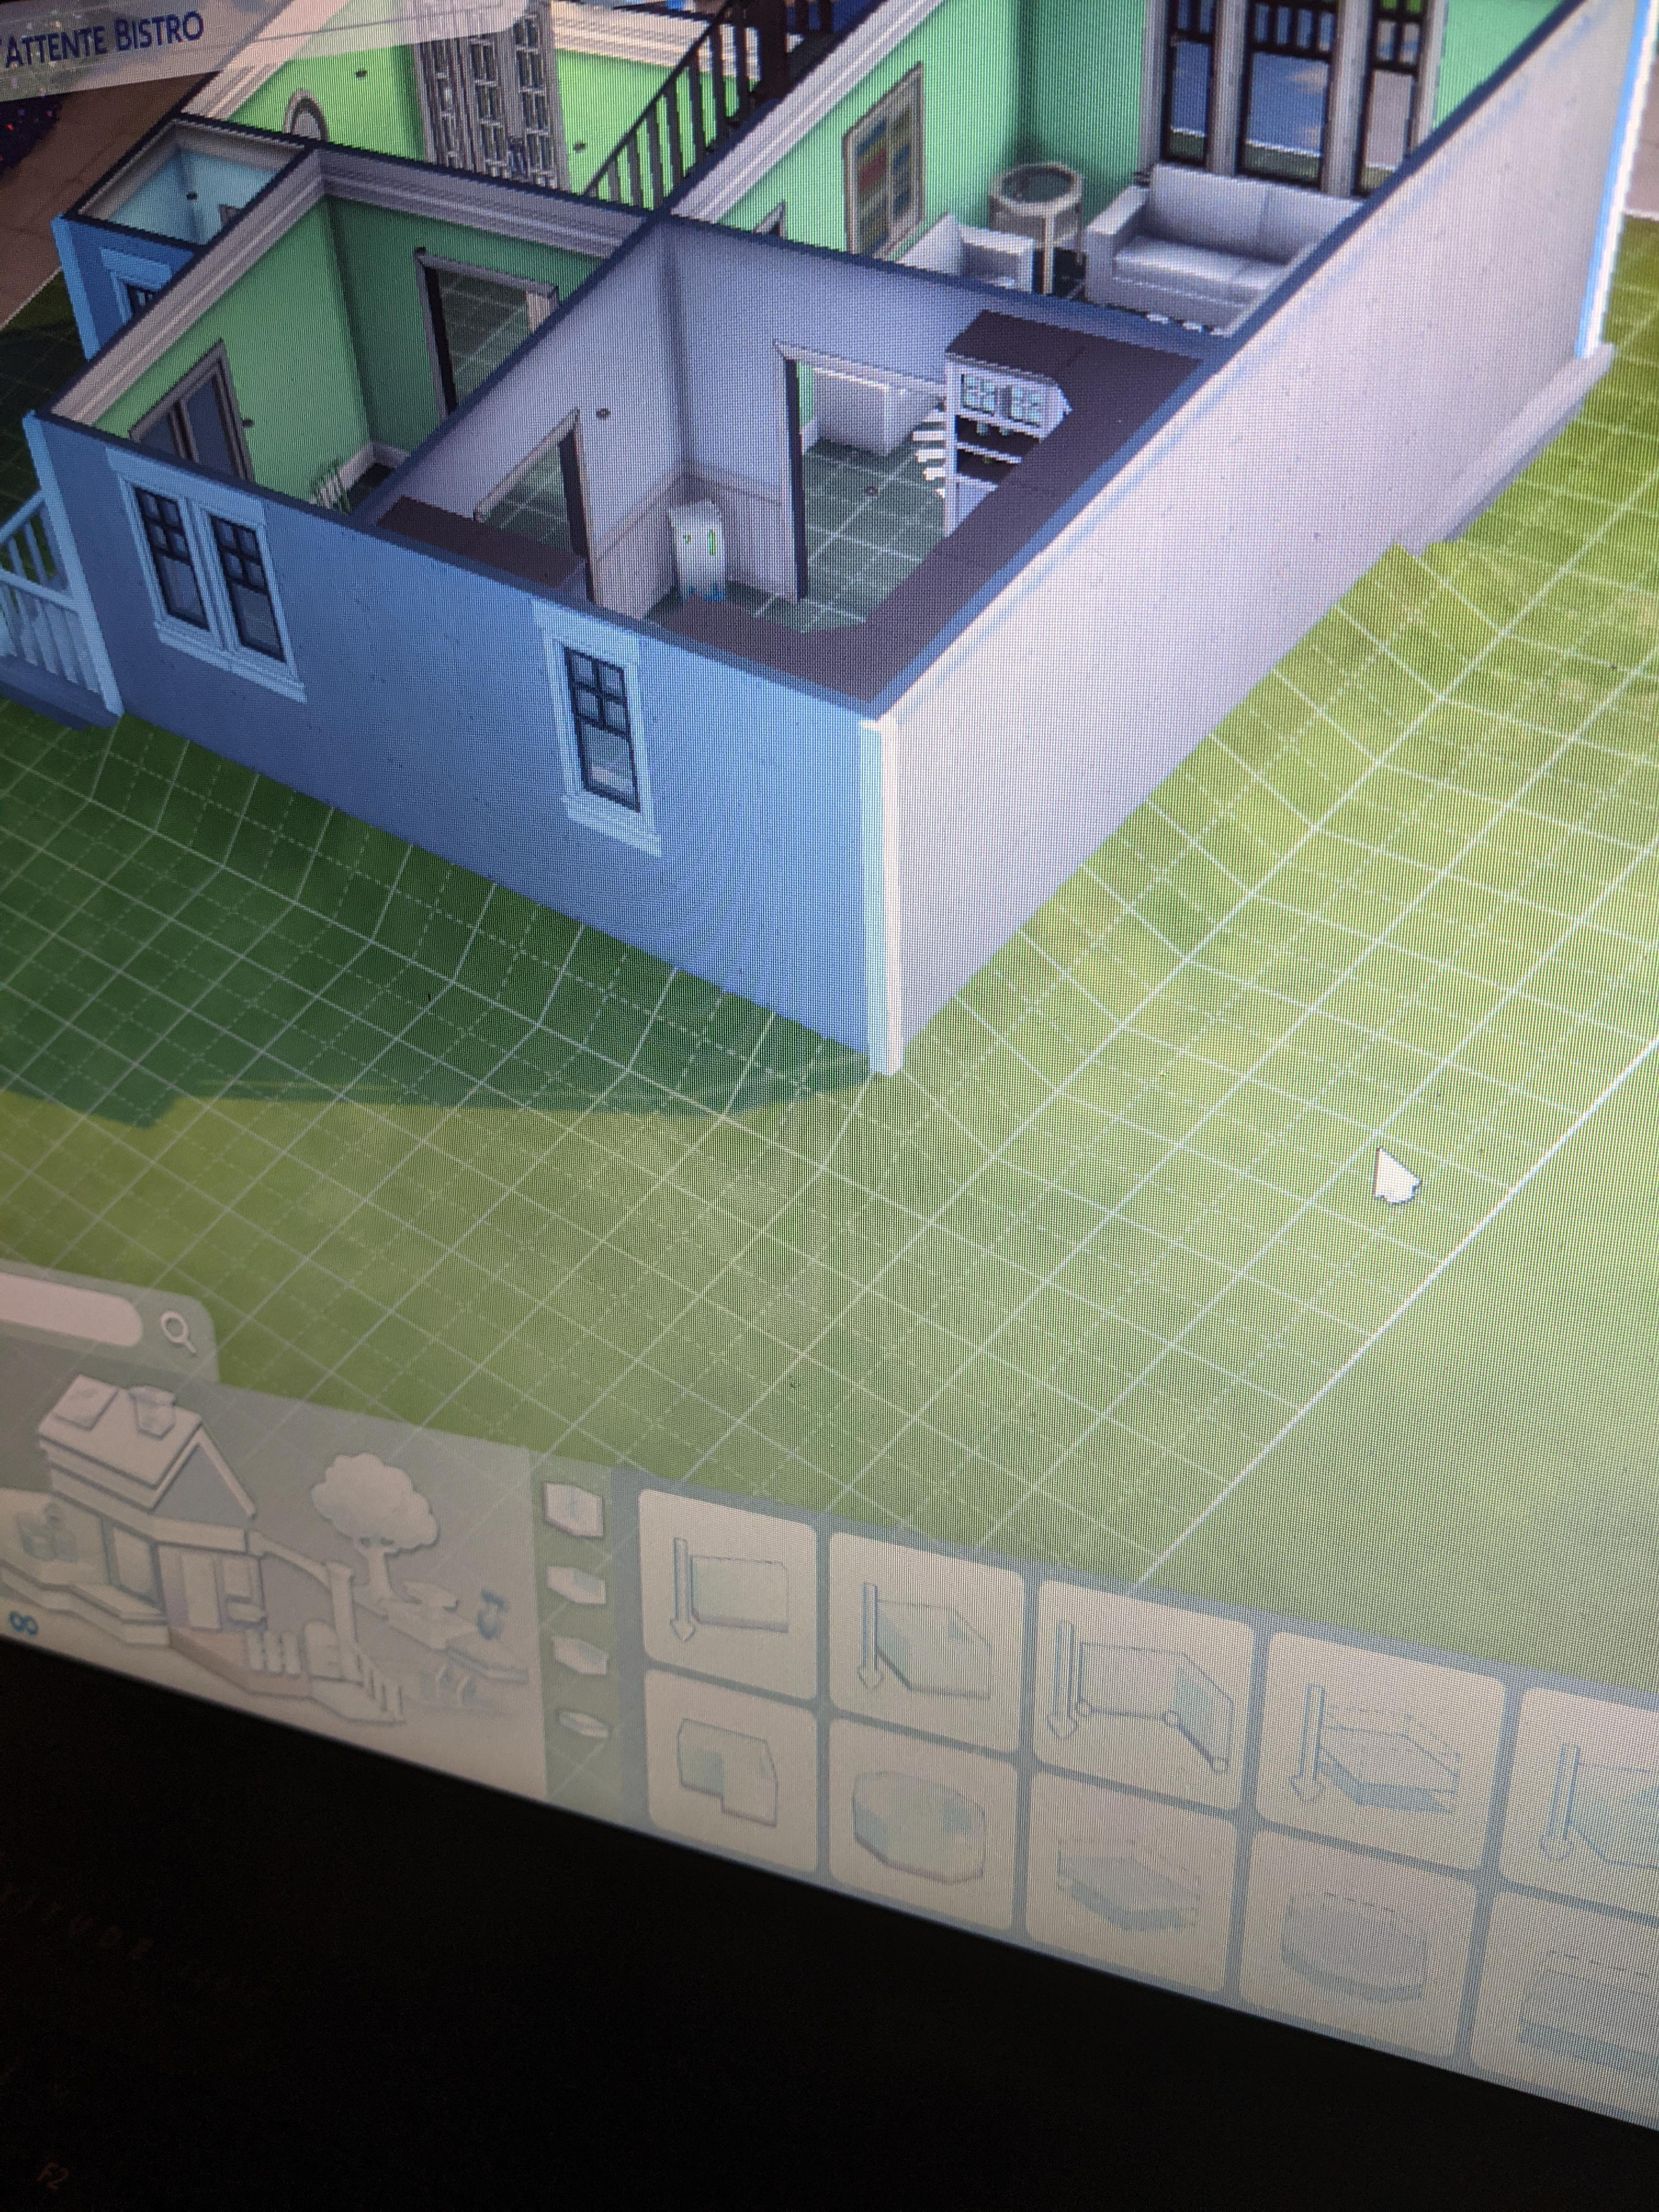 How To Make Basement Sims 4 : basement, Trying, Build, Basement, Keeps, Happening., Sims4